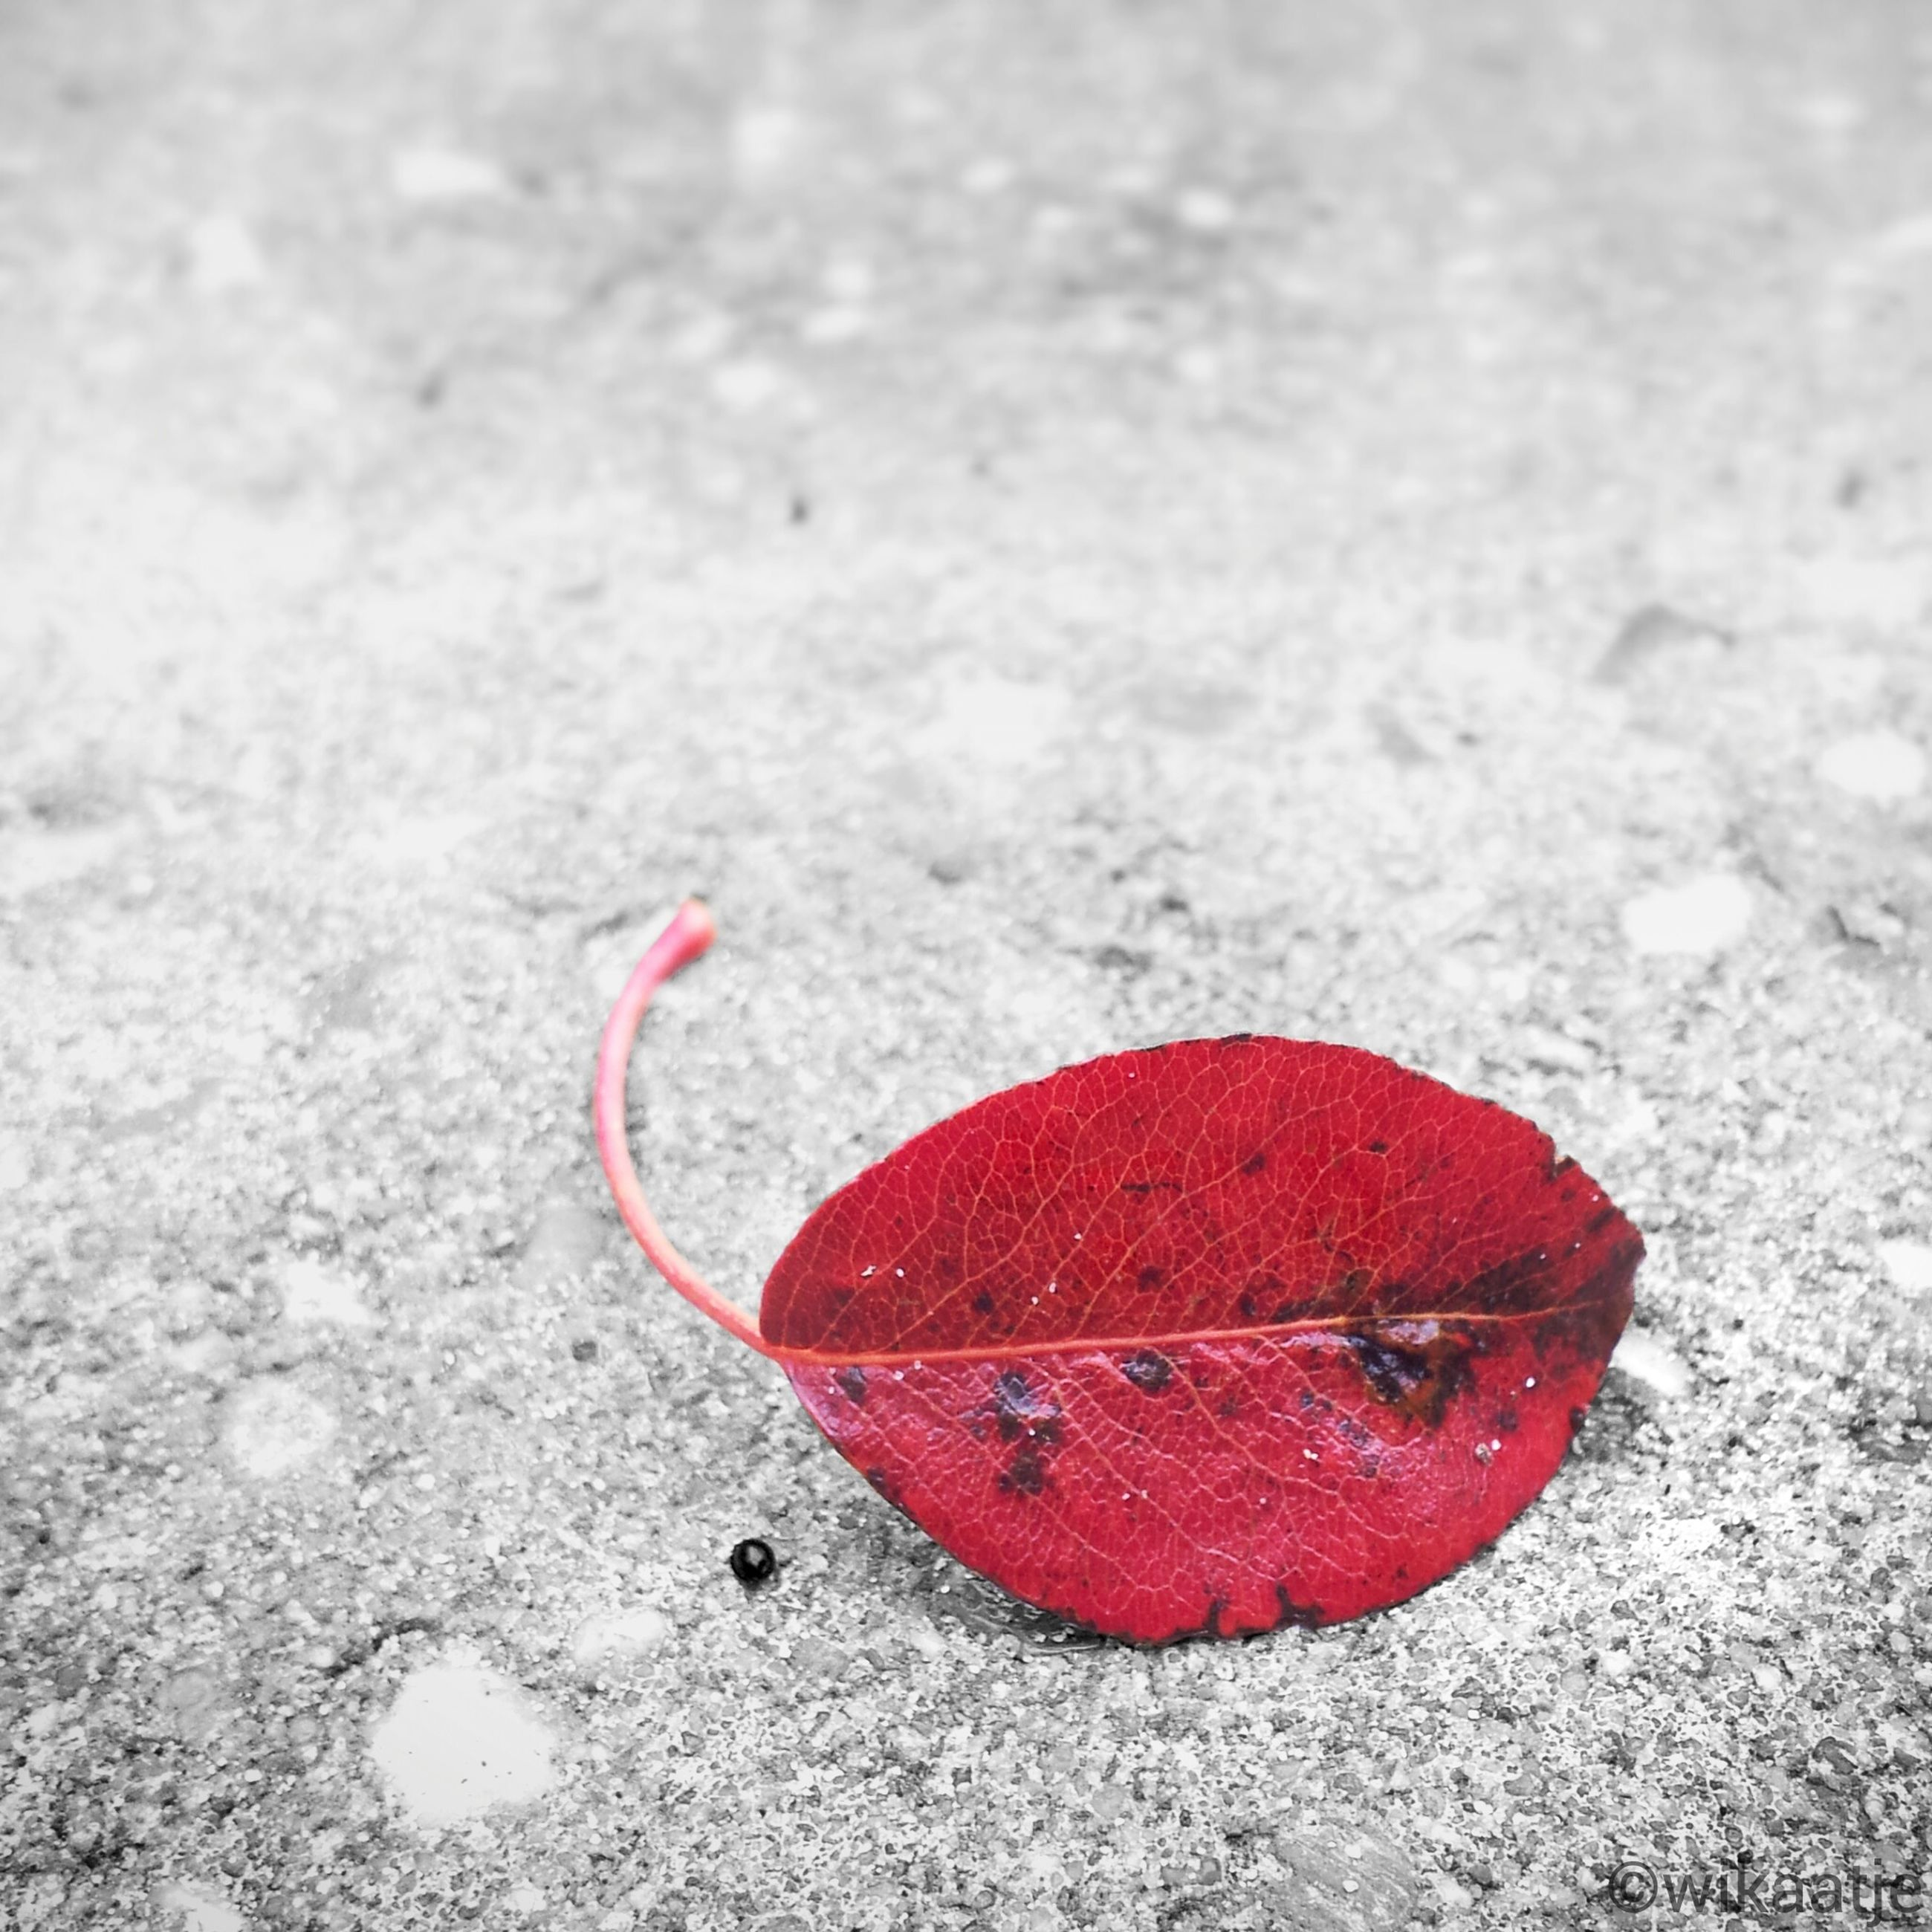 red, close-up, high angle view, ground, leaf, street, no people, still life, single object, day, textured, nature, outdoors, heart shape, asphalt, pink color, autumn, road, dry, fallen